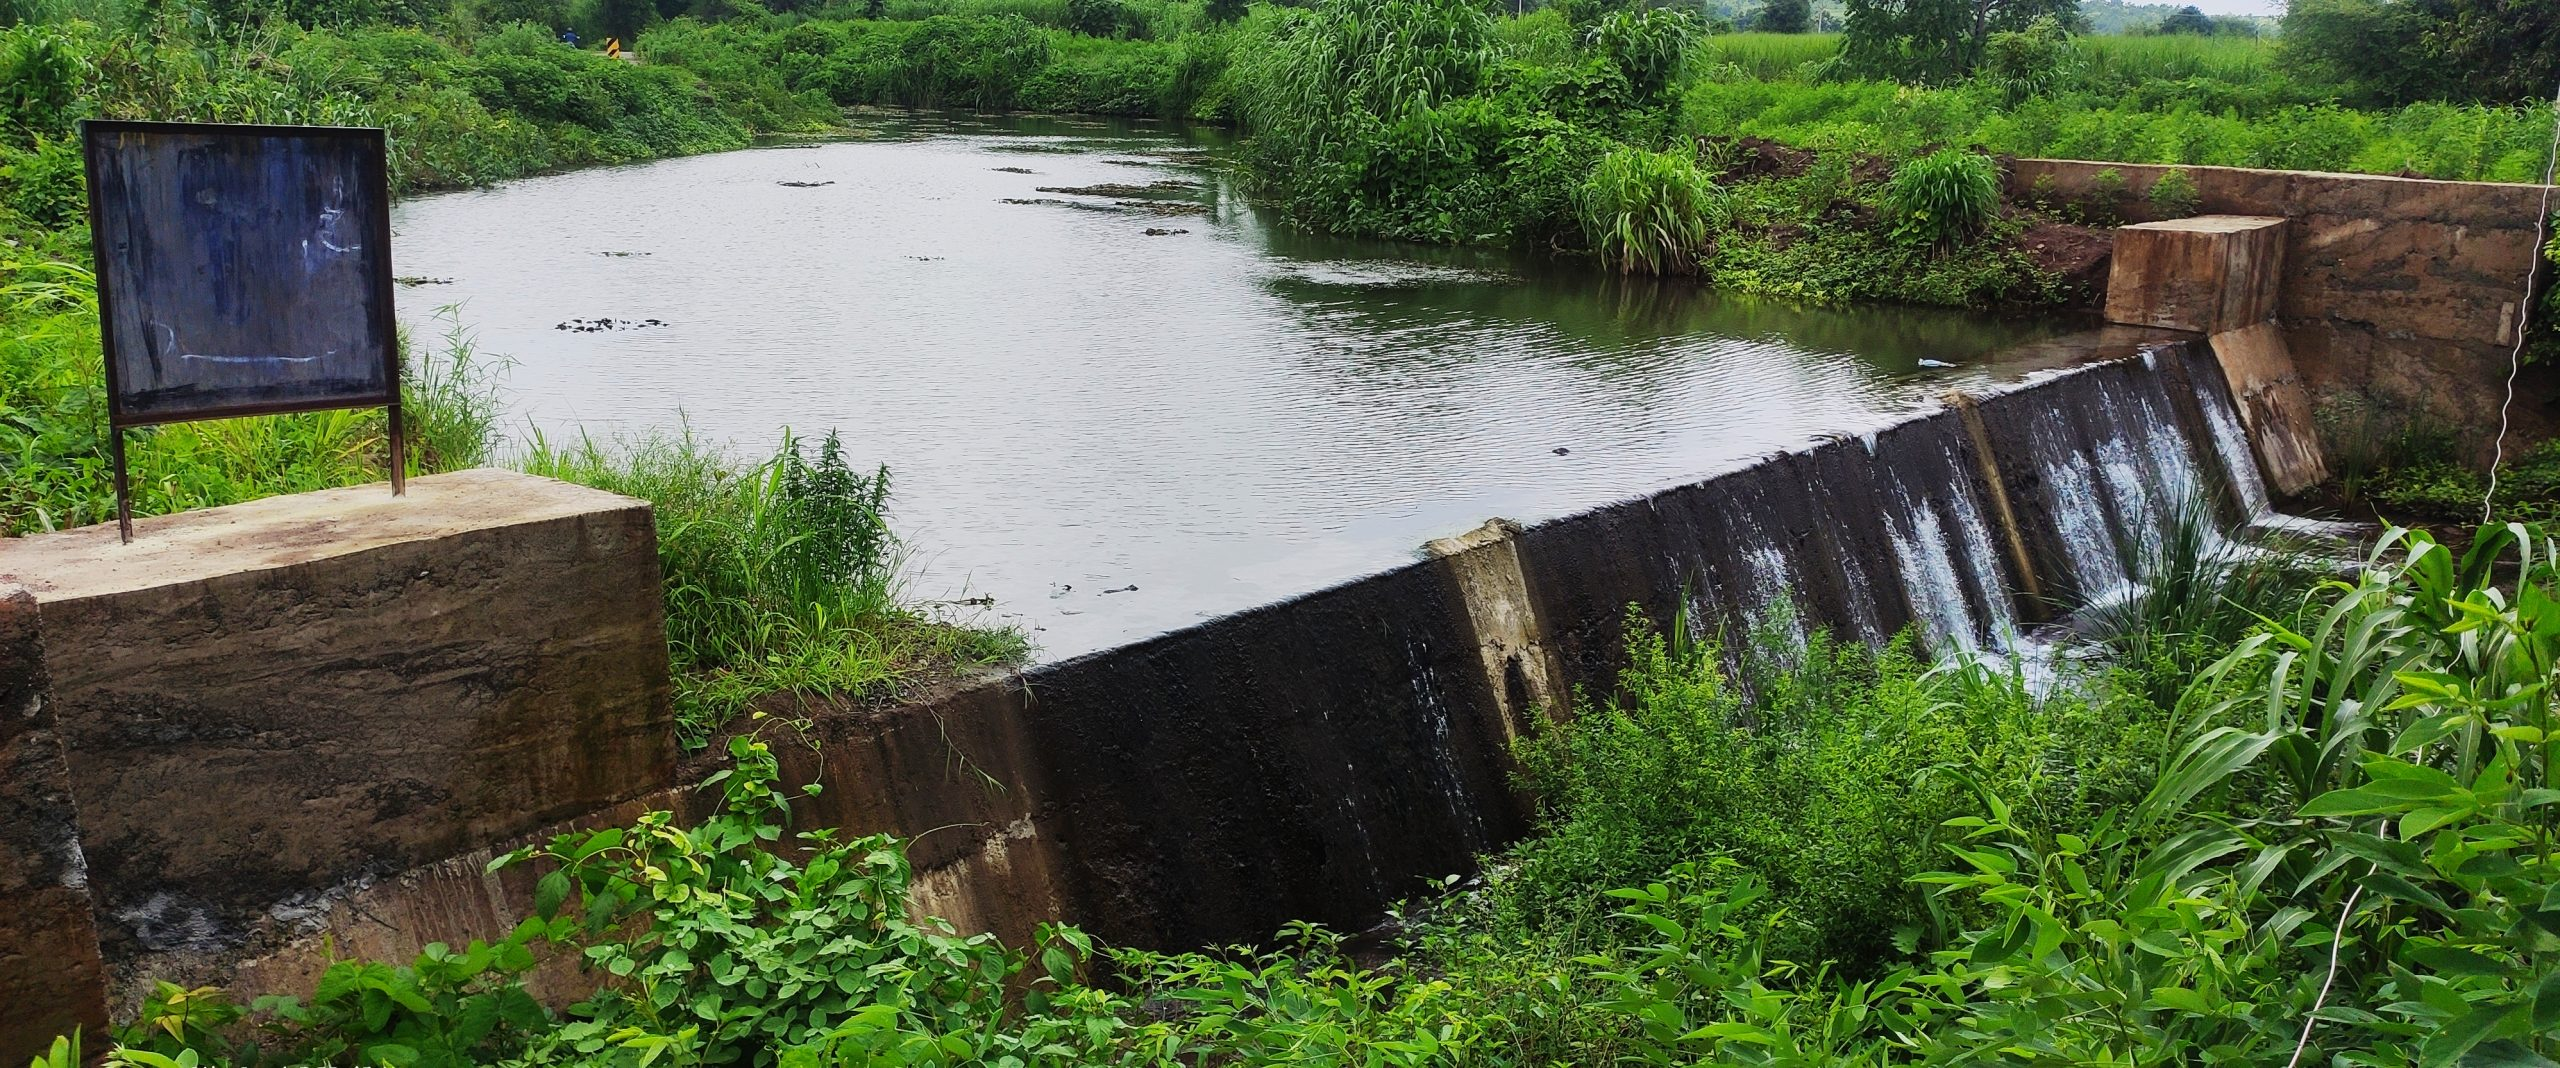 Dam in the midst of forest